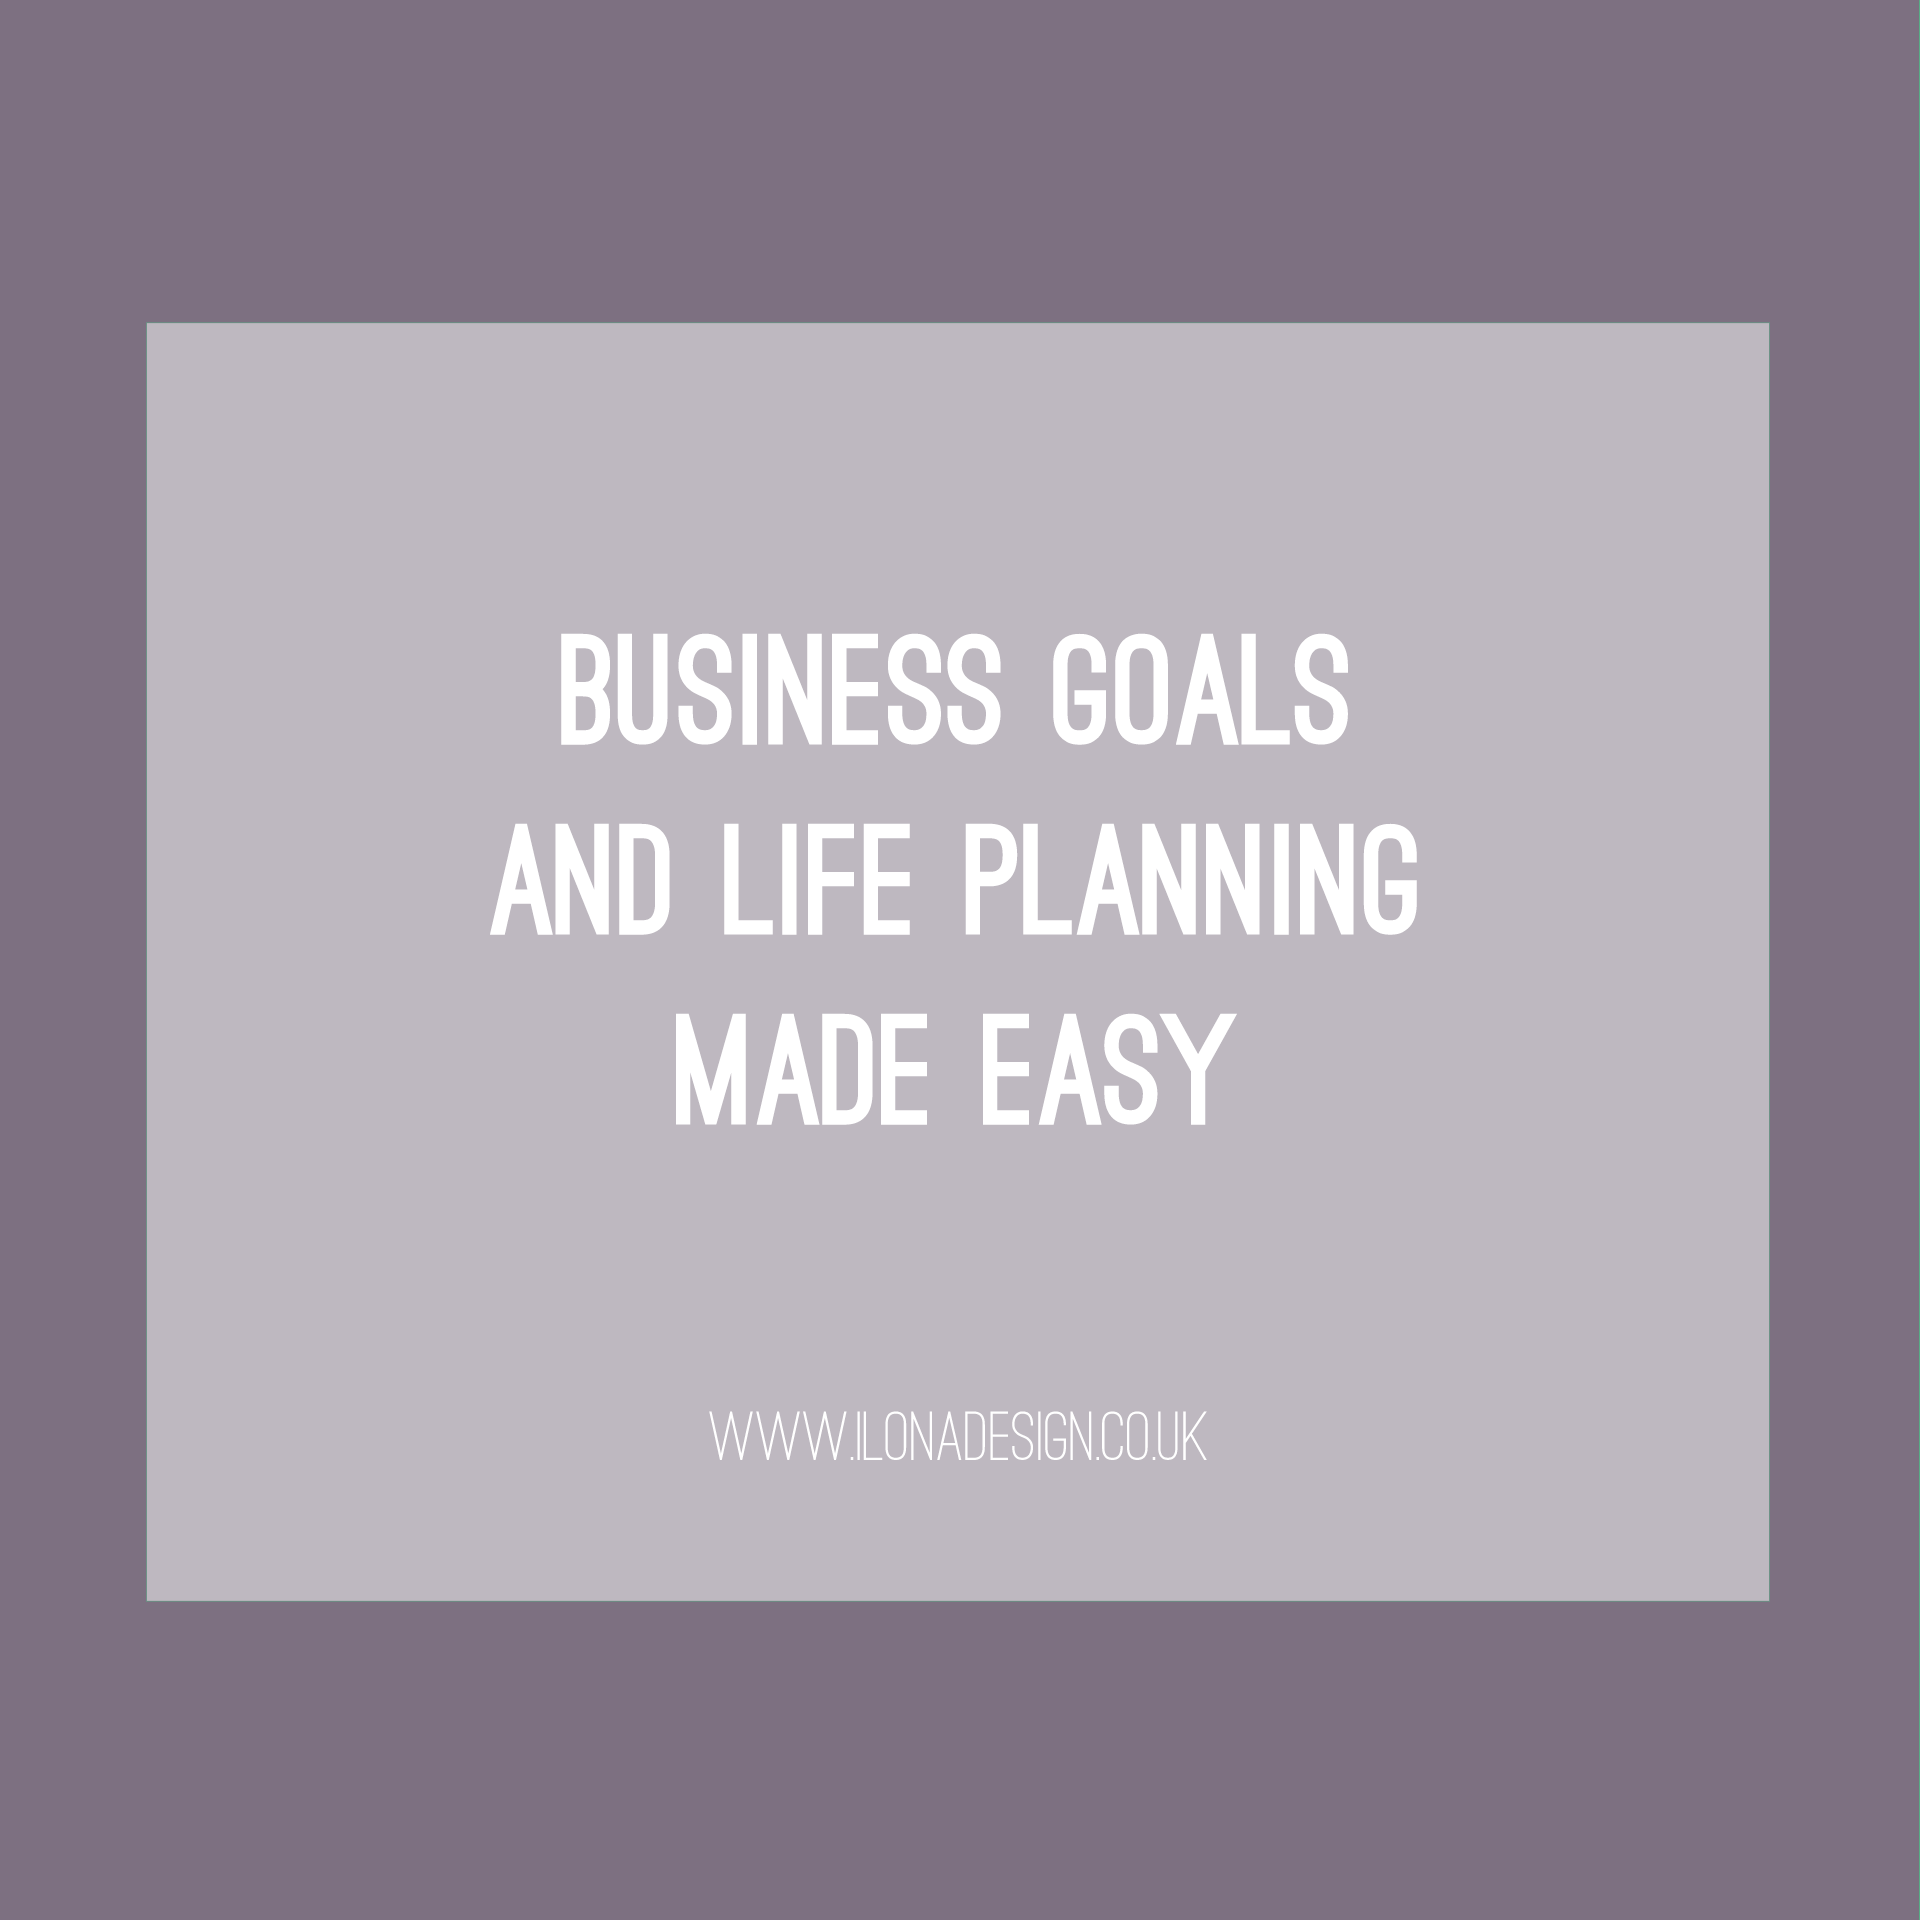 Business goals and Life planning made easy